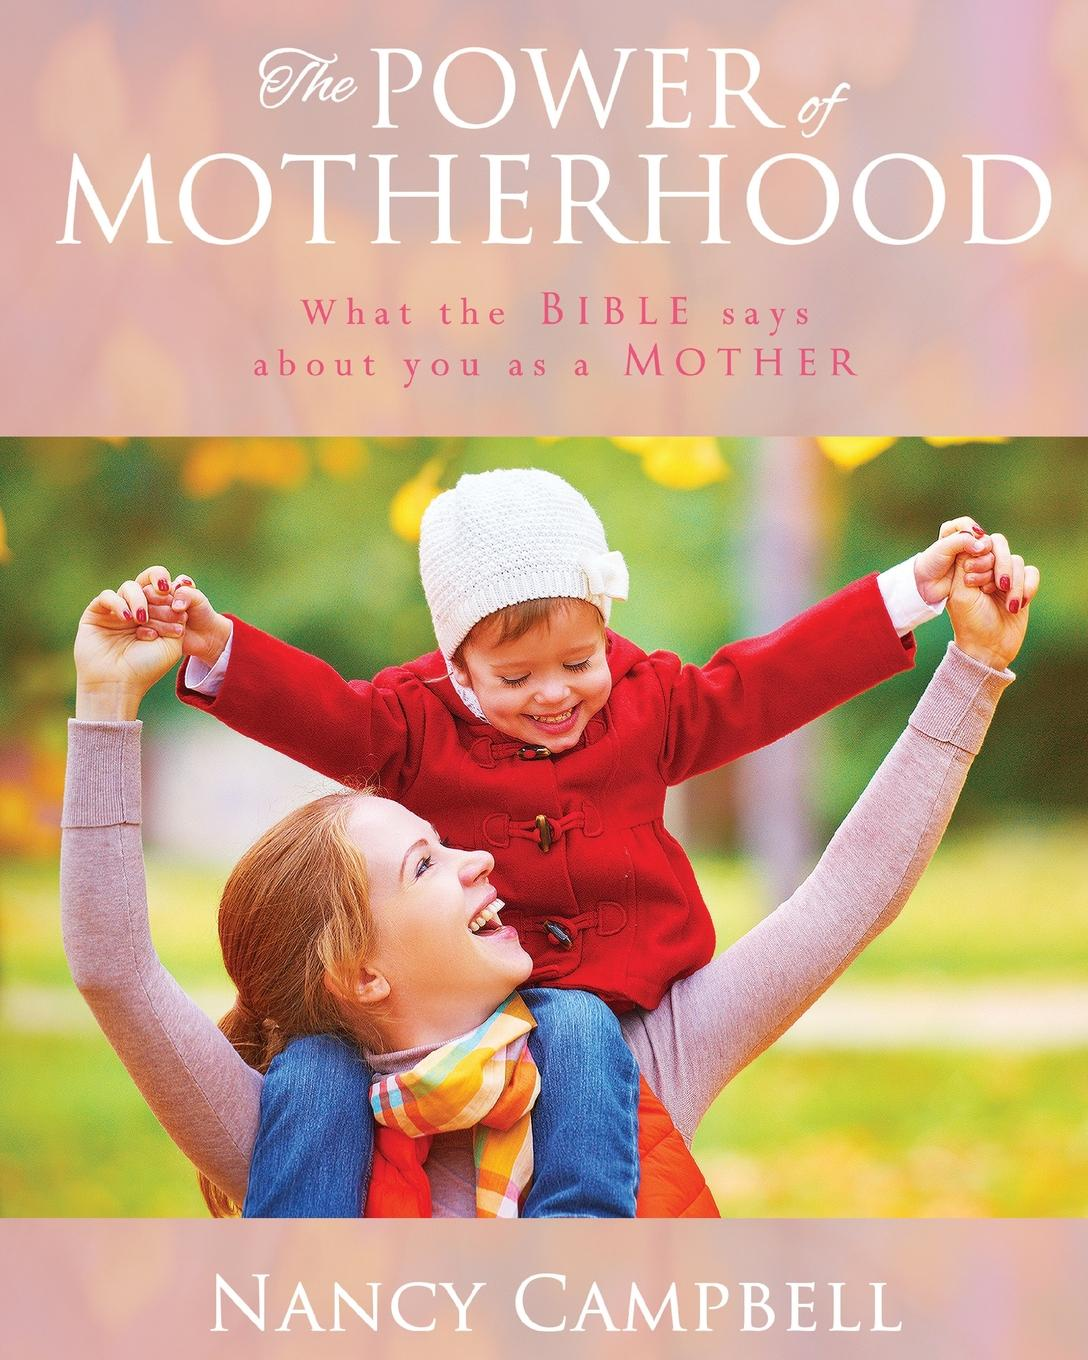 Nancy Campbell The Power of Motherhood. What the Bible says about Mothers motherhood